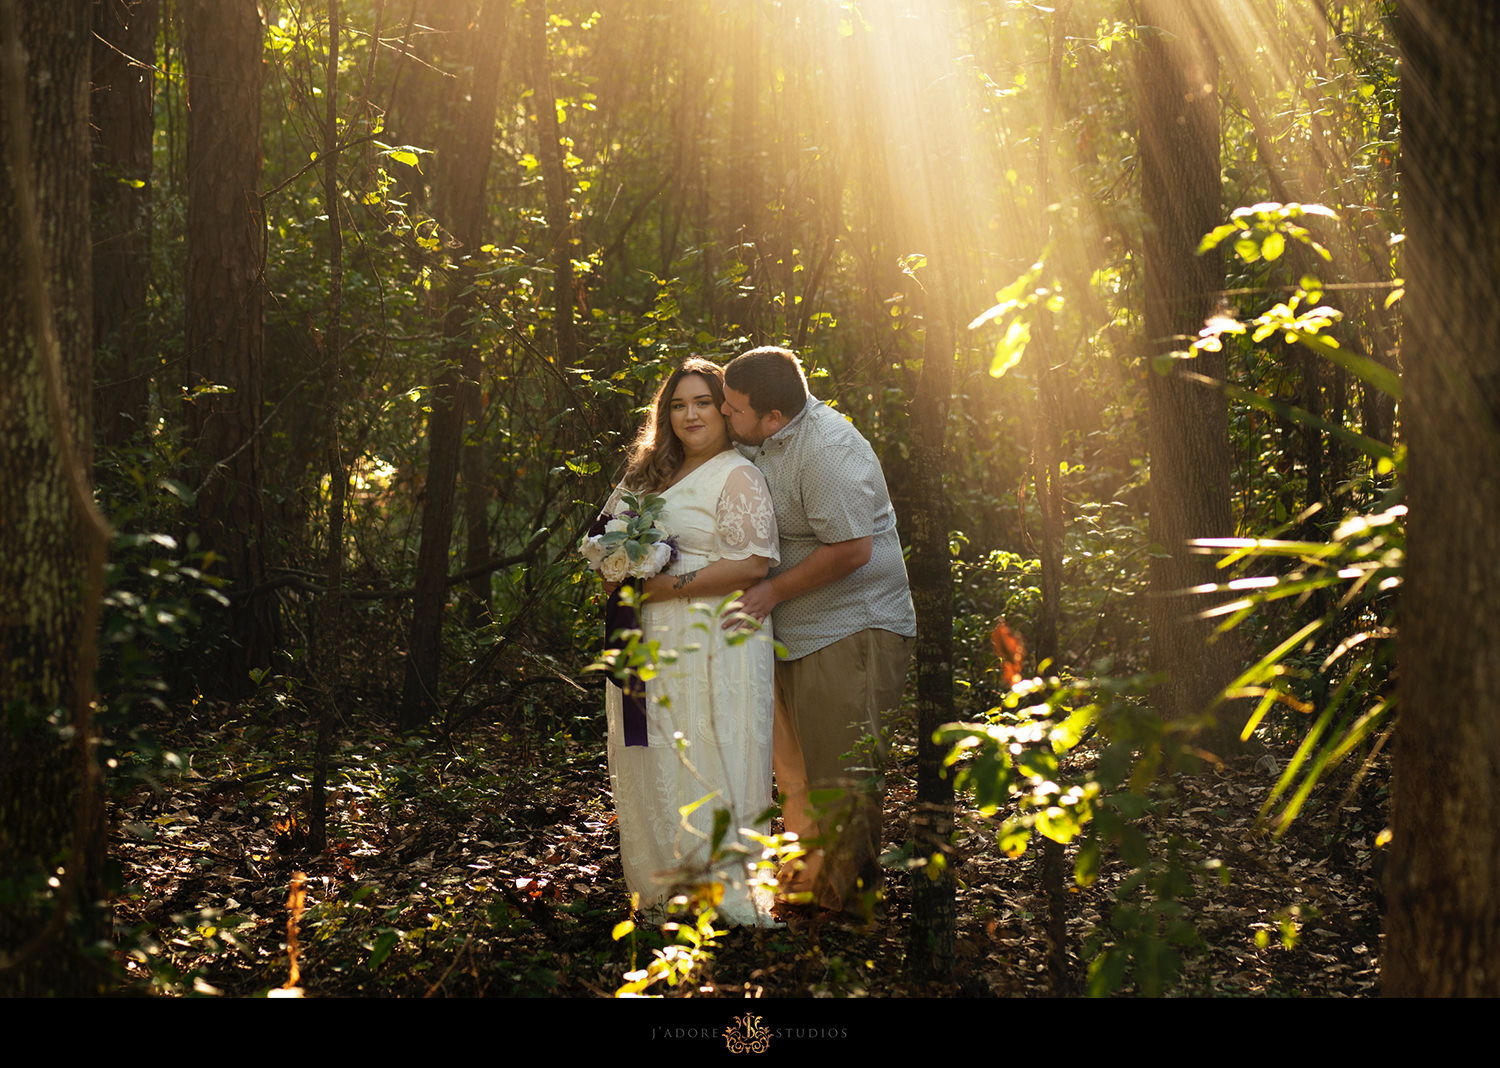 Groom kissing brides cheek in the woods in golden rays of light